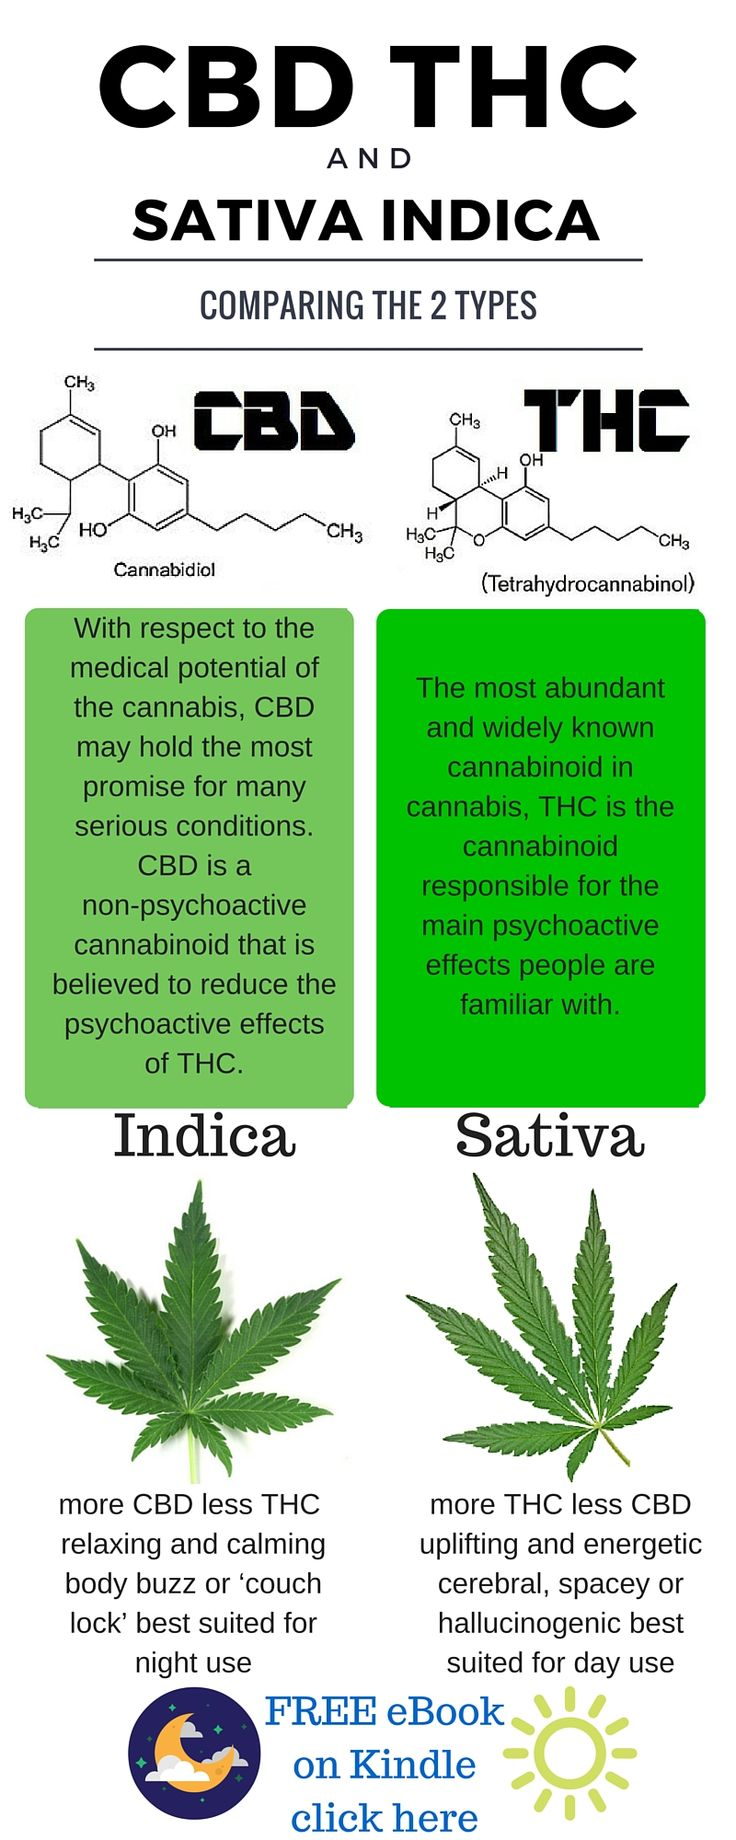 17 Best images about Marijuana Infographics. on Pinterest ...